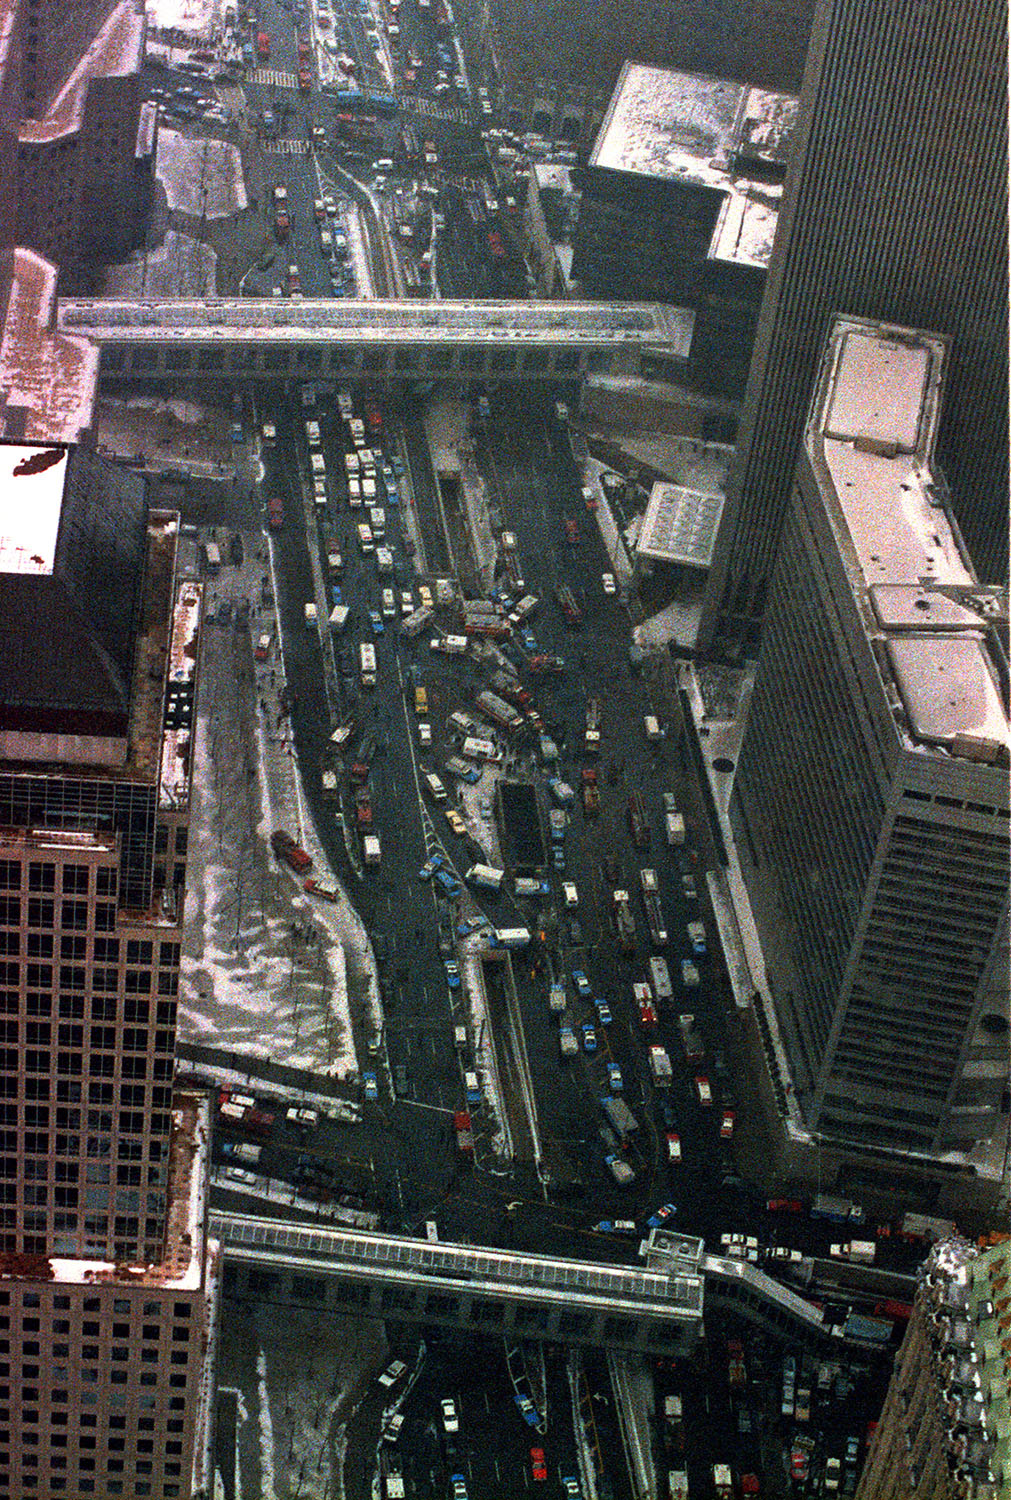 <div class='meta'><div class='origin-logo' data-origin='AP'></div><span class='caption-text' data-credit='AP Photo/Val Mazzuka'>Police and fire equipment block the streets near the World Trade Center in New York City on Feb. 26, 1993.</span></div>